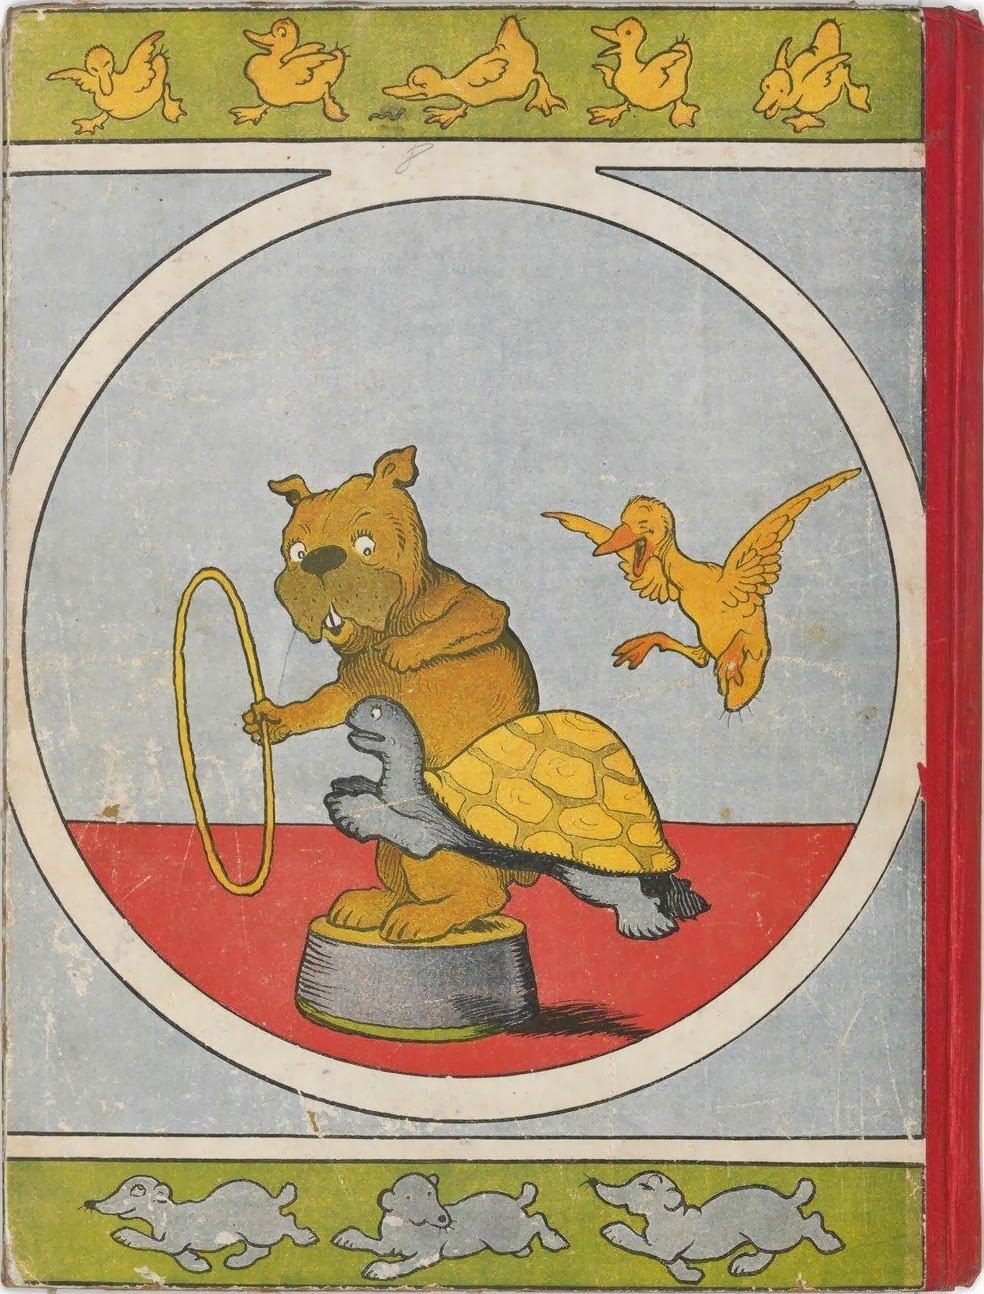 back cover colour picture of anthropomorphic dog, turtle and duck in a circus scene